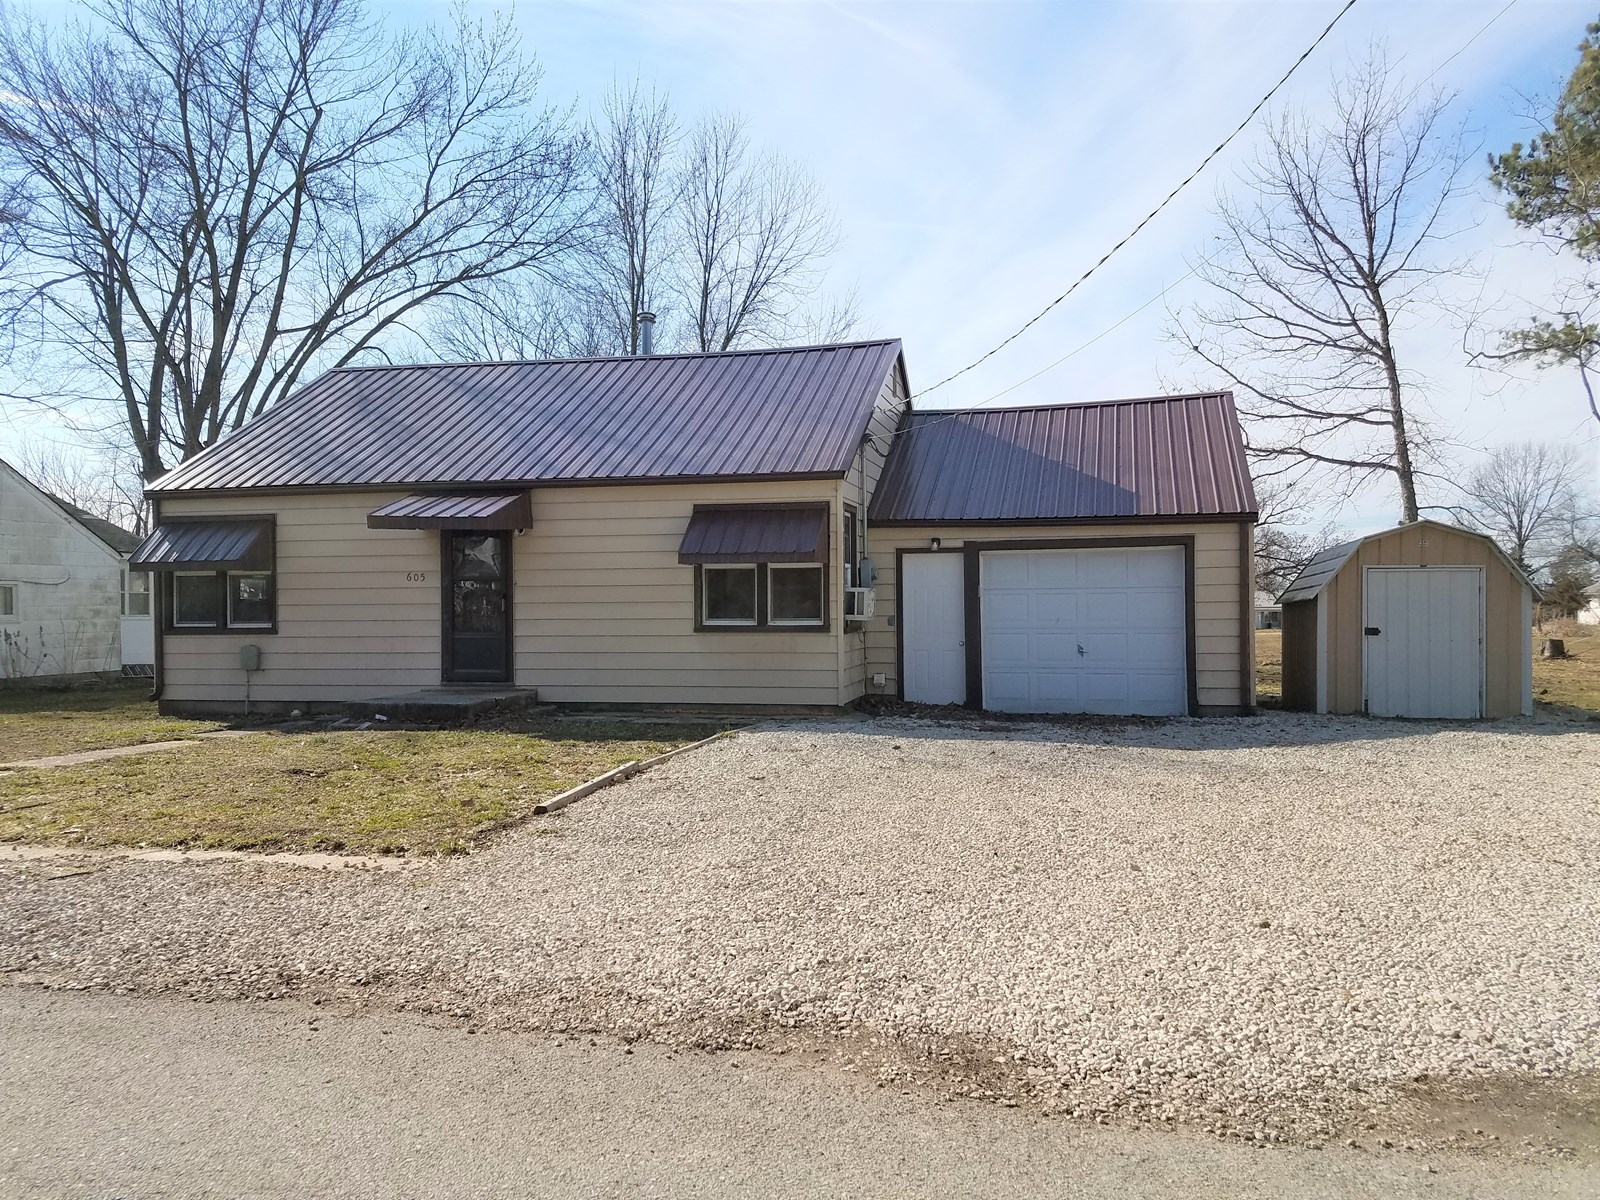 Move in ready home in small rural town in Missouri!